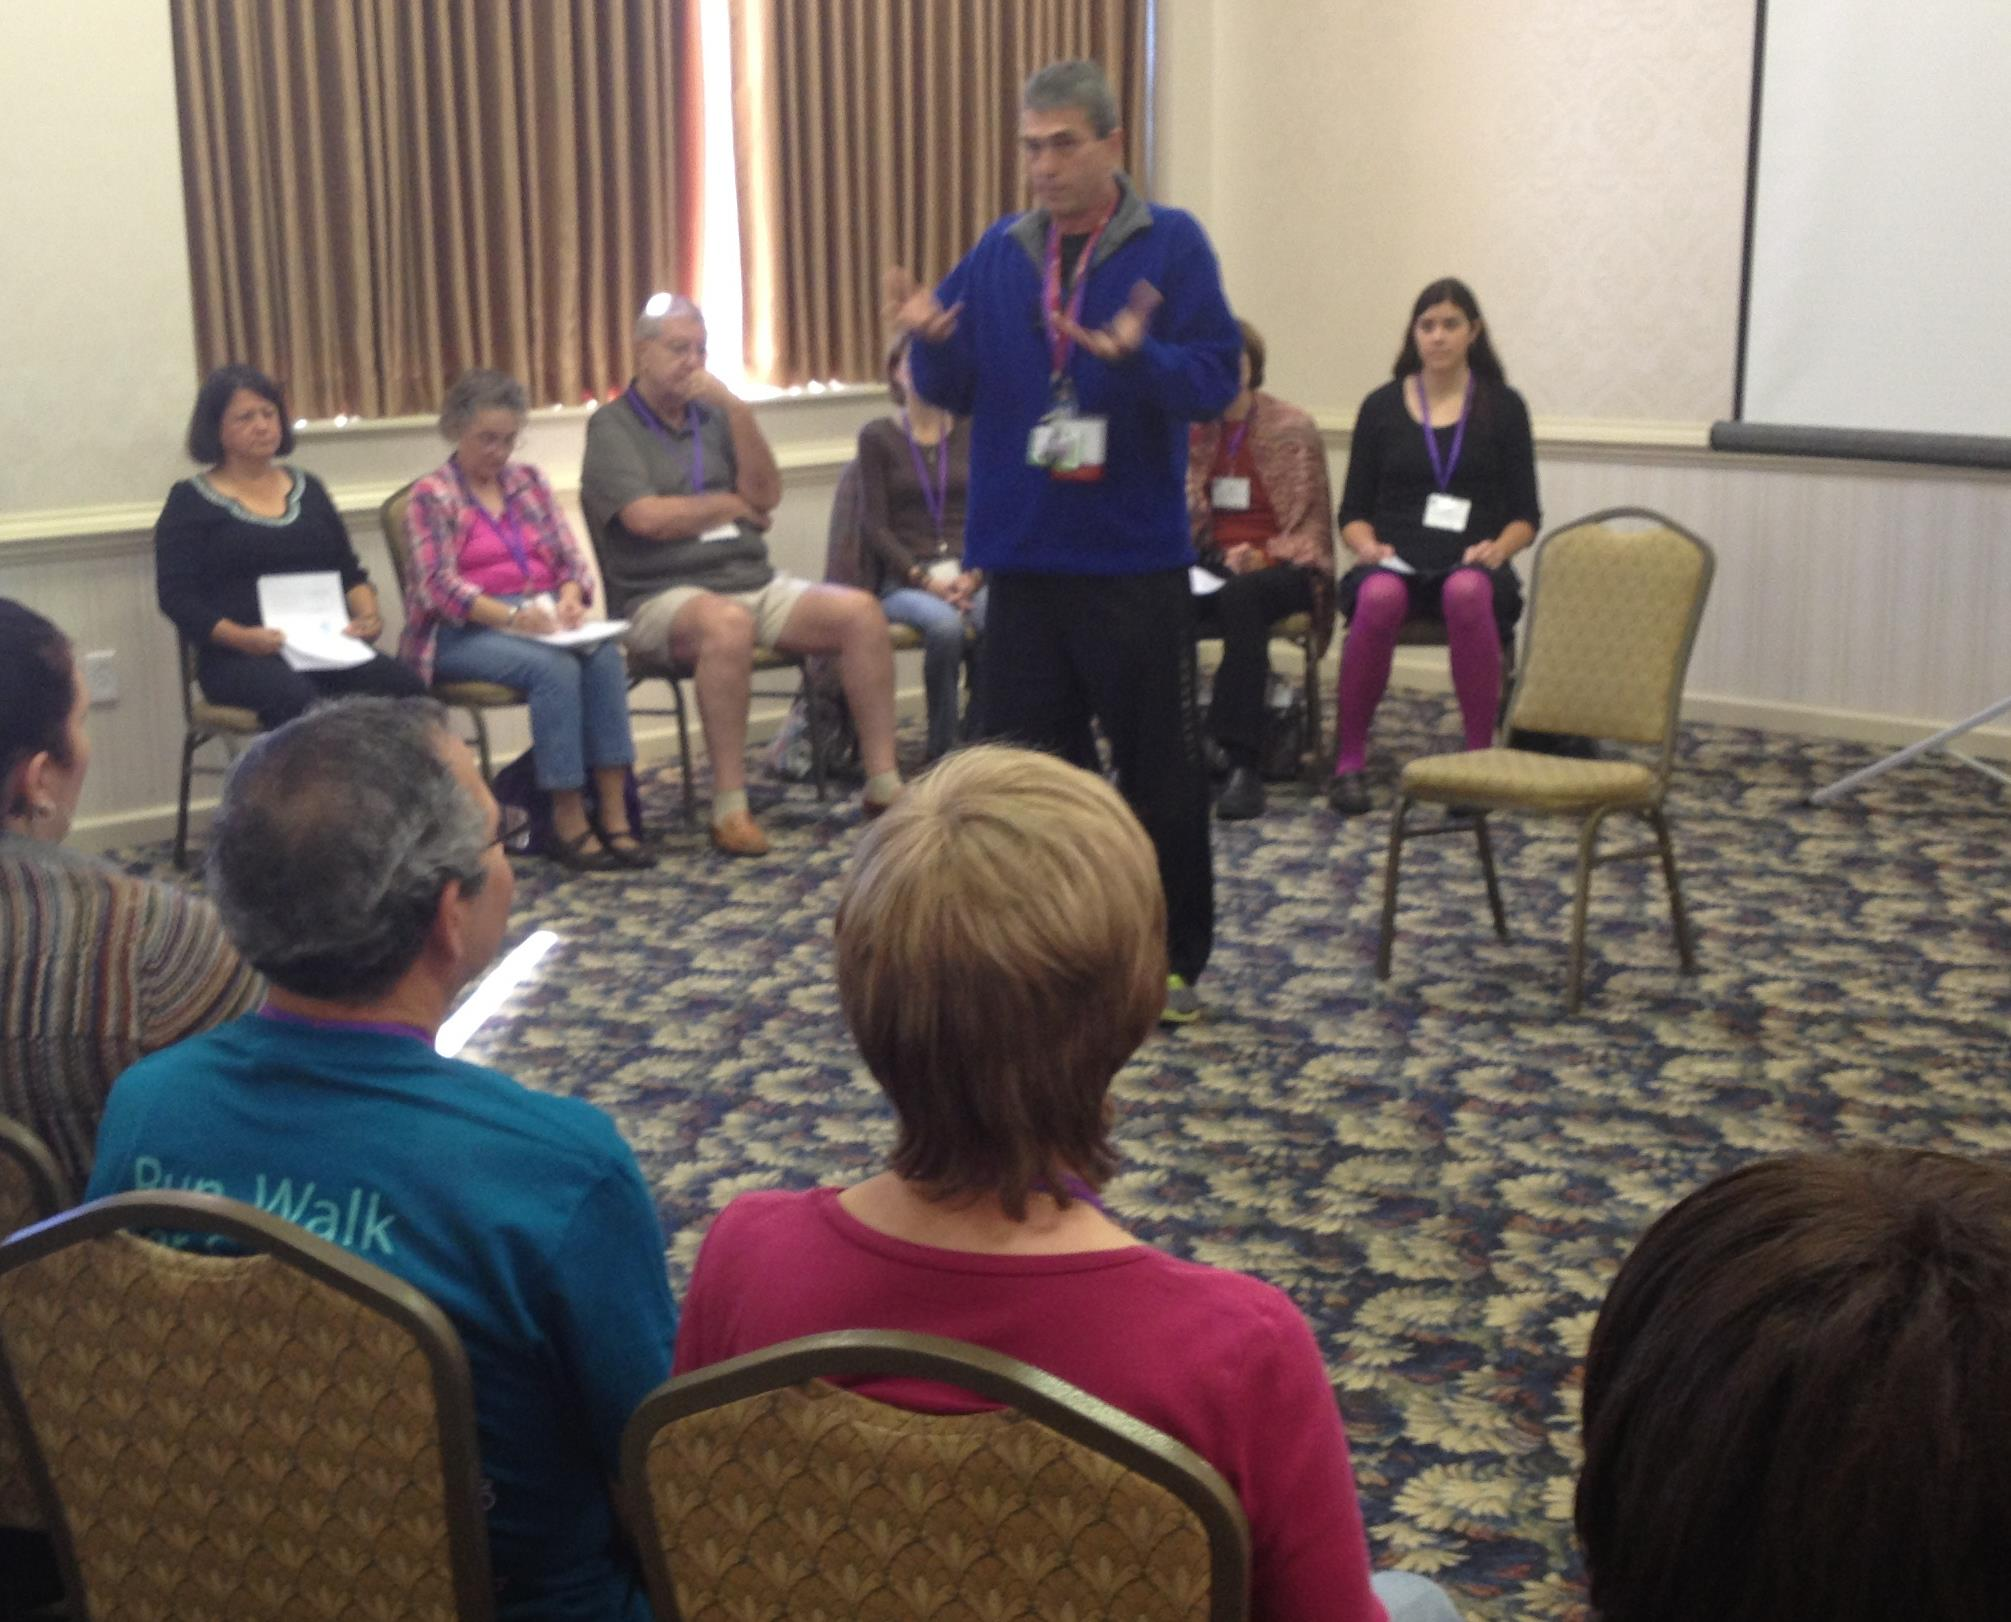 Rami led two capacity filled sessions at the 2013 Thyca Conference in Philadelphia.